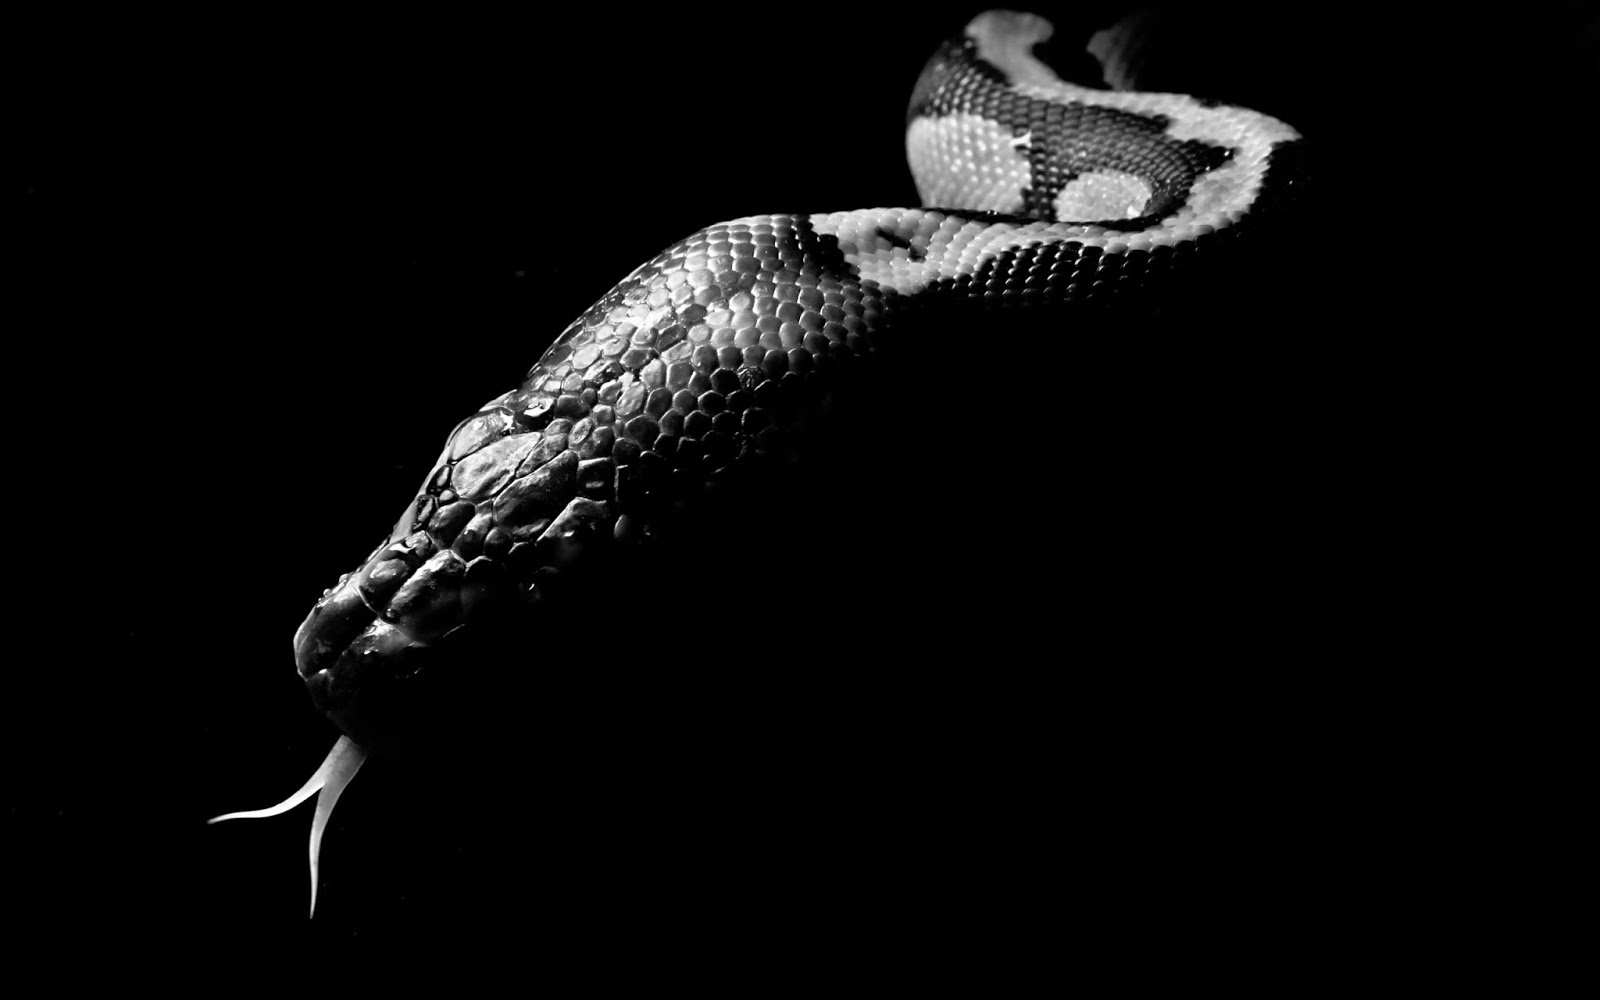 Snakes & Vipers Wallpapers   Wallpaper Albums